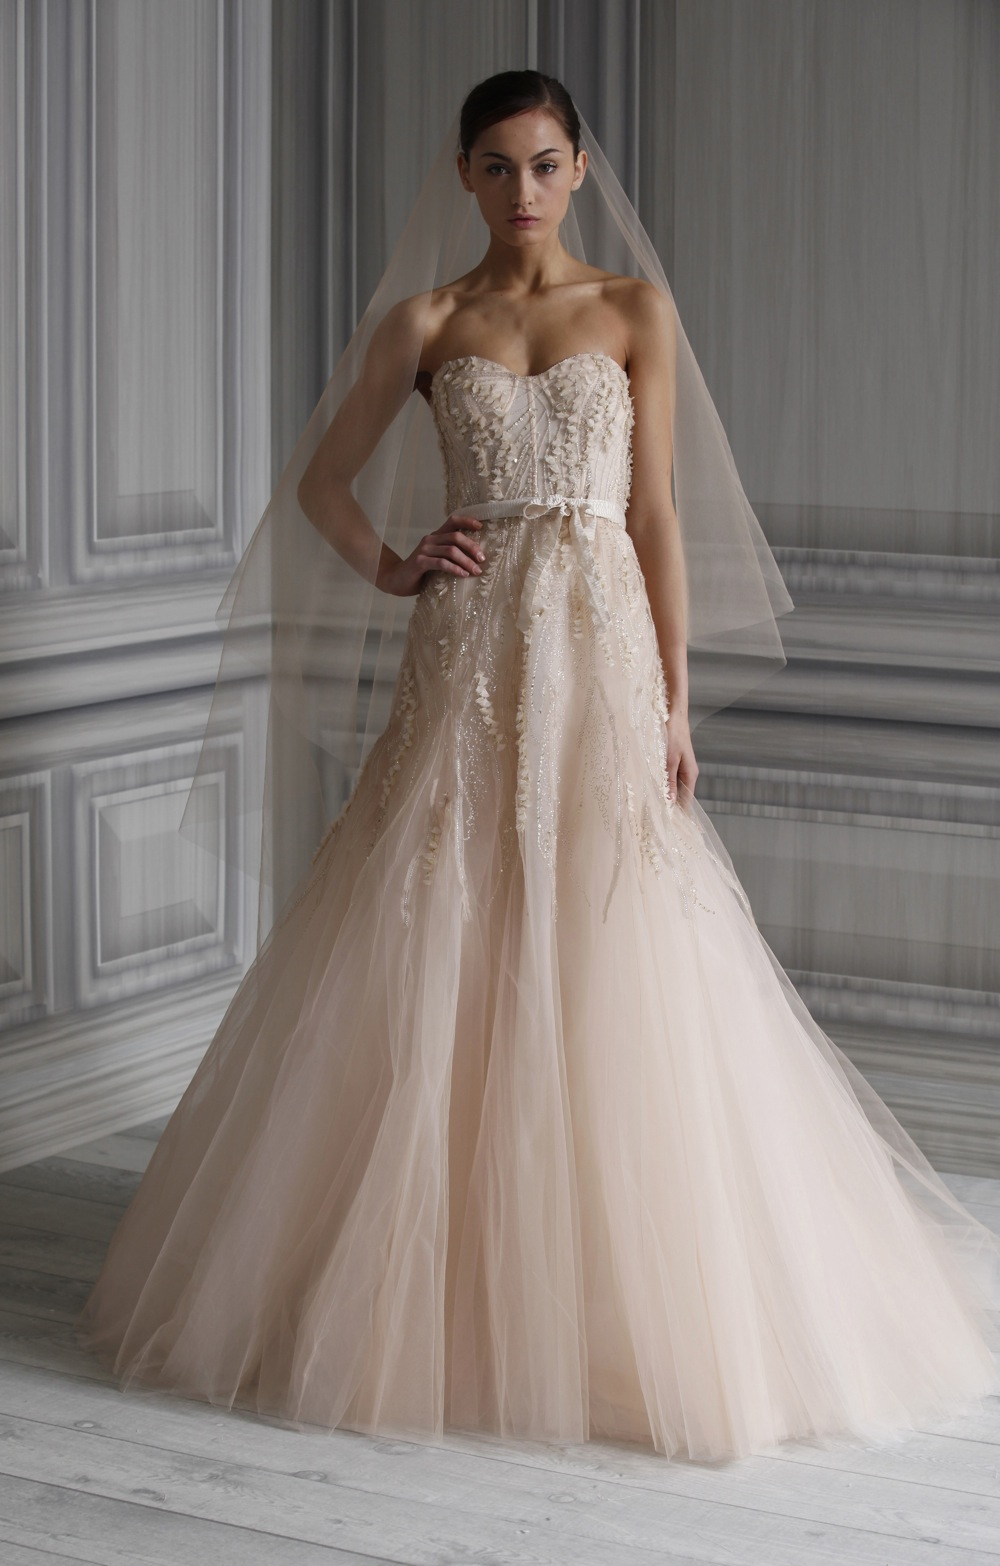 Wedding-dress-monique-lhuillier-bridal-gowns-spring-2012-candy.original